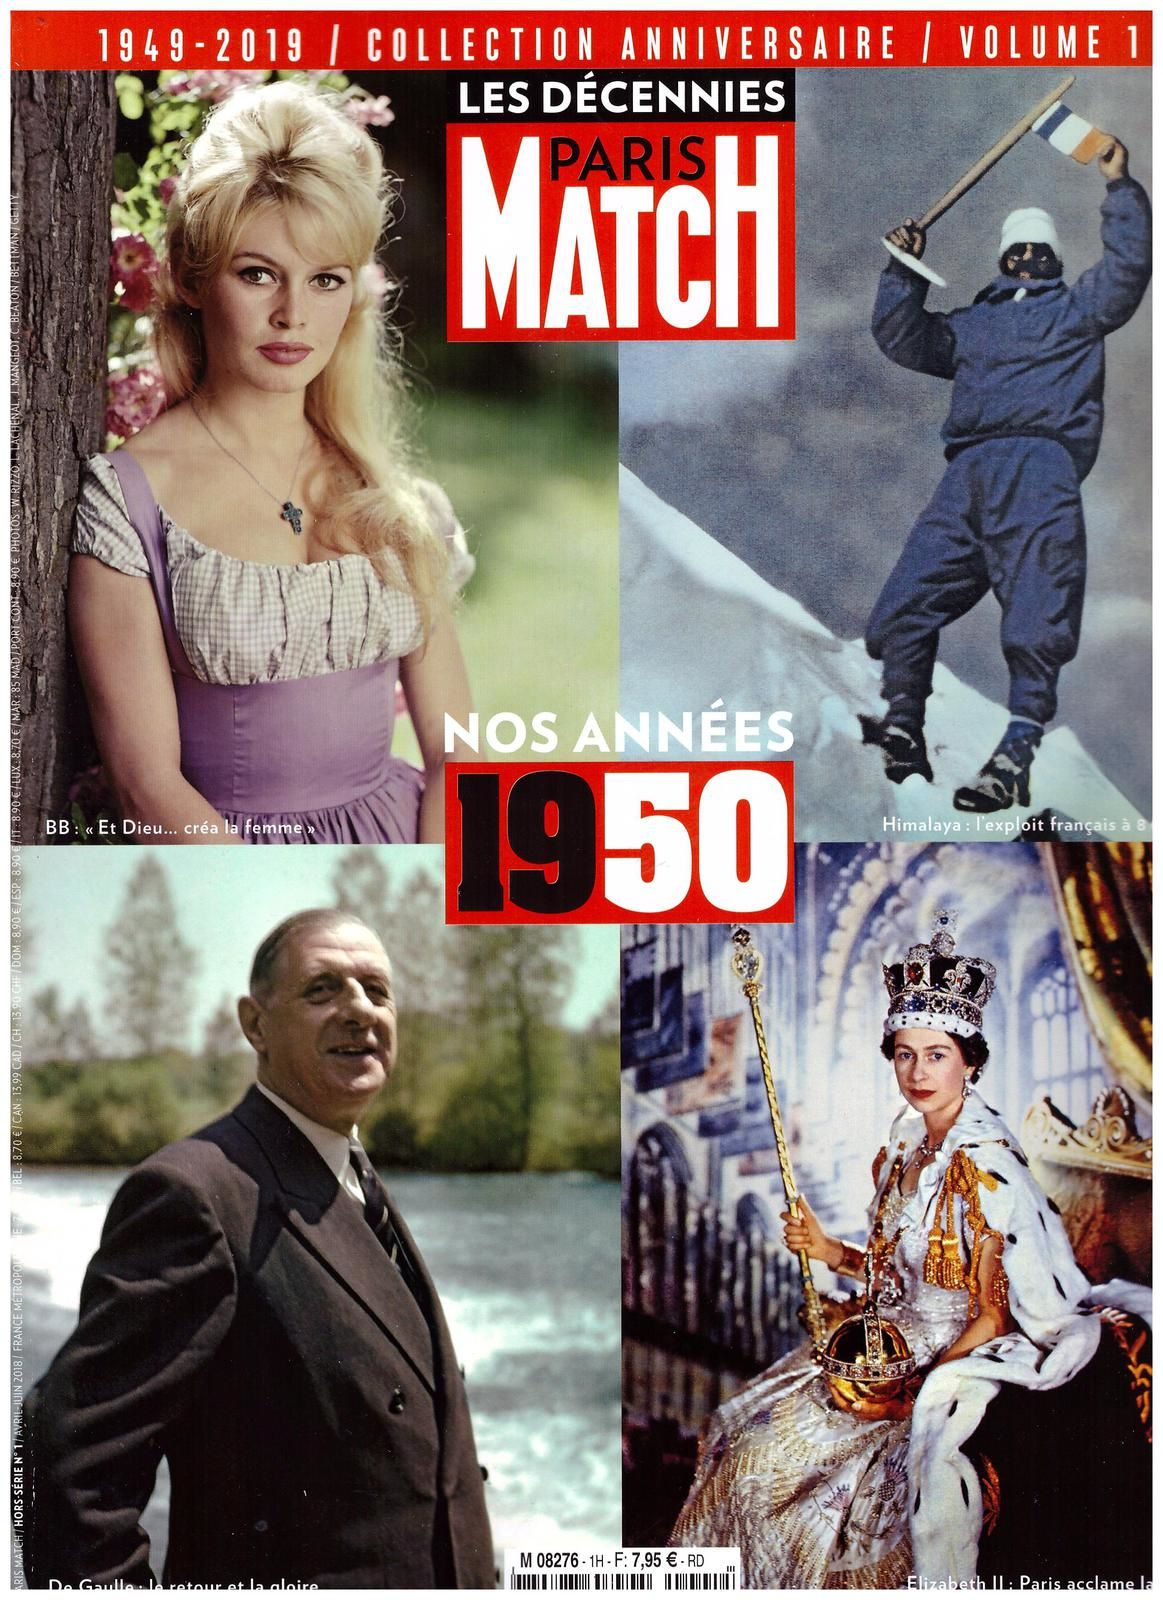 Les décennies Paris Match 1950 (Mars 2018)